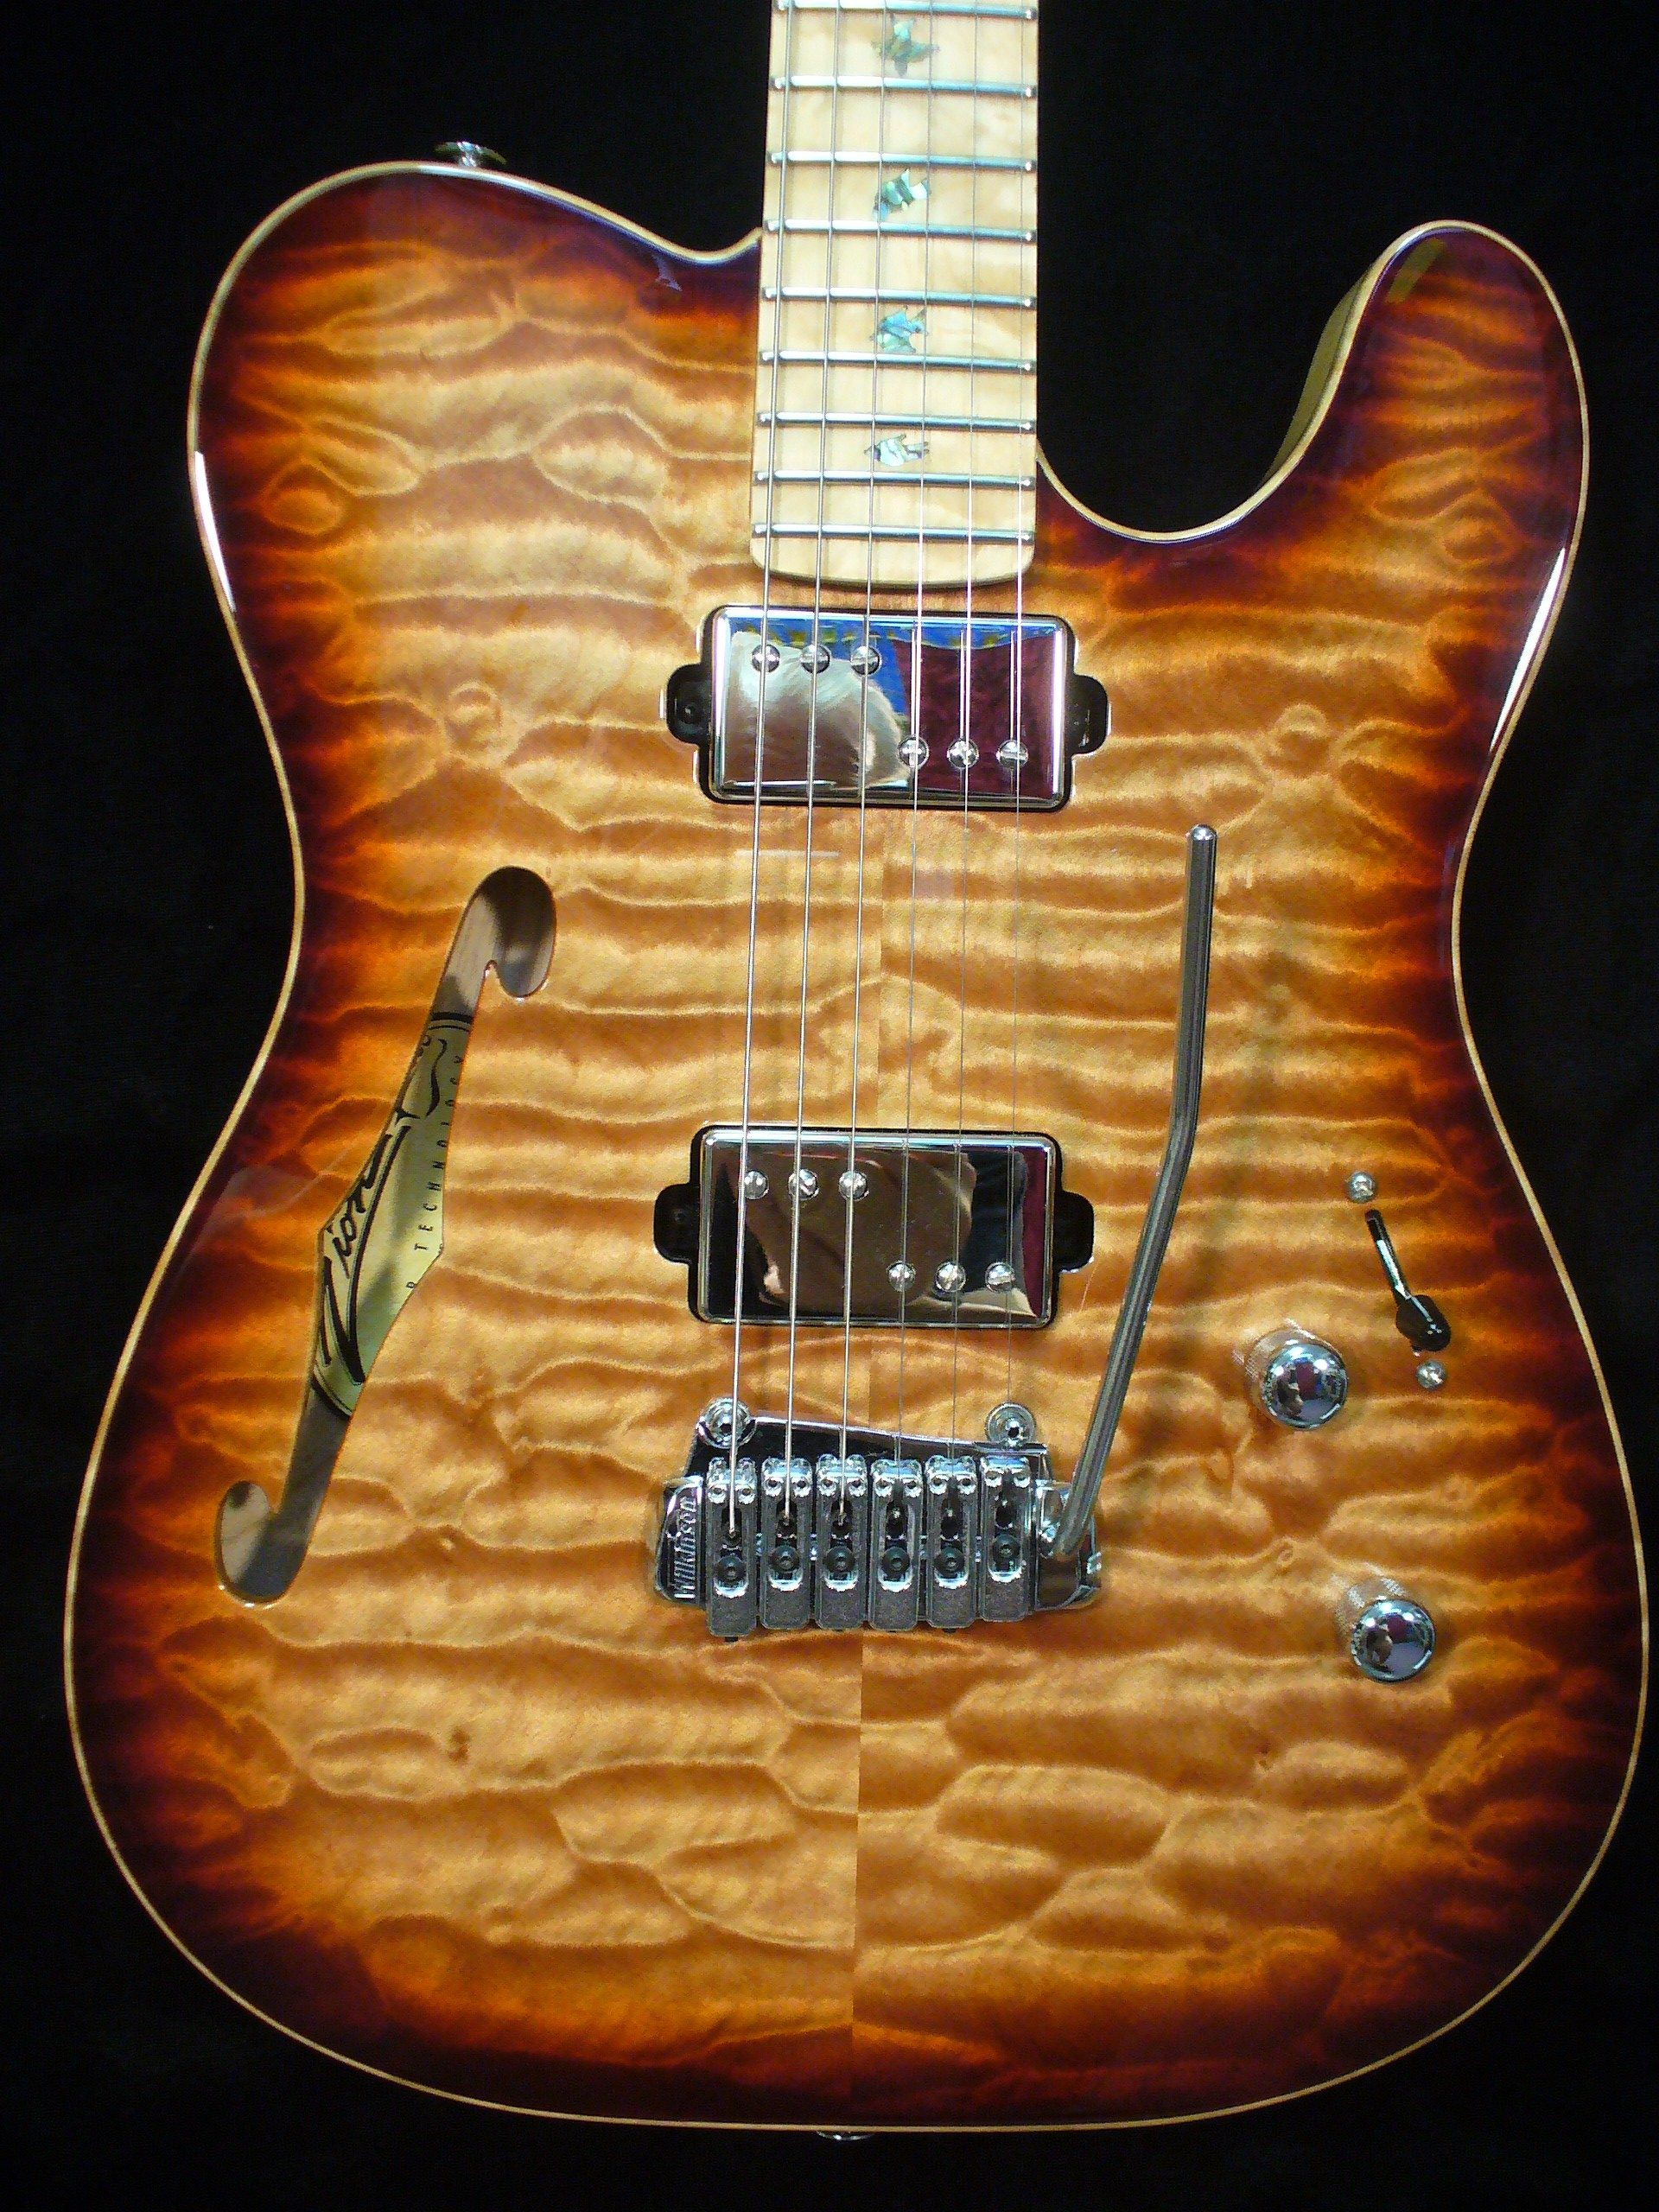 The Ninety | Zion Guitar Technology